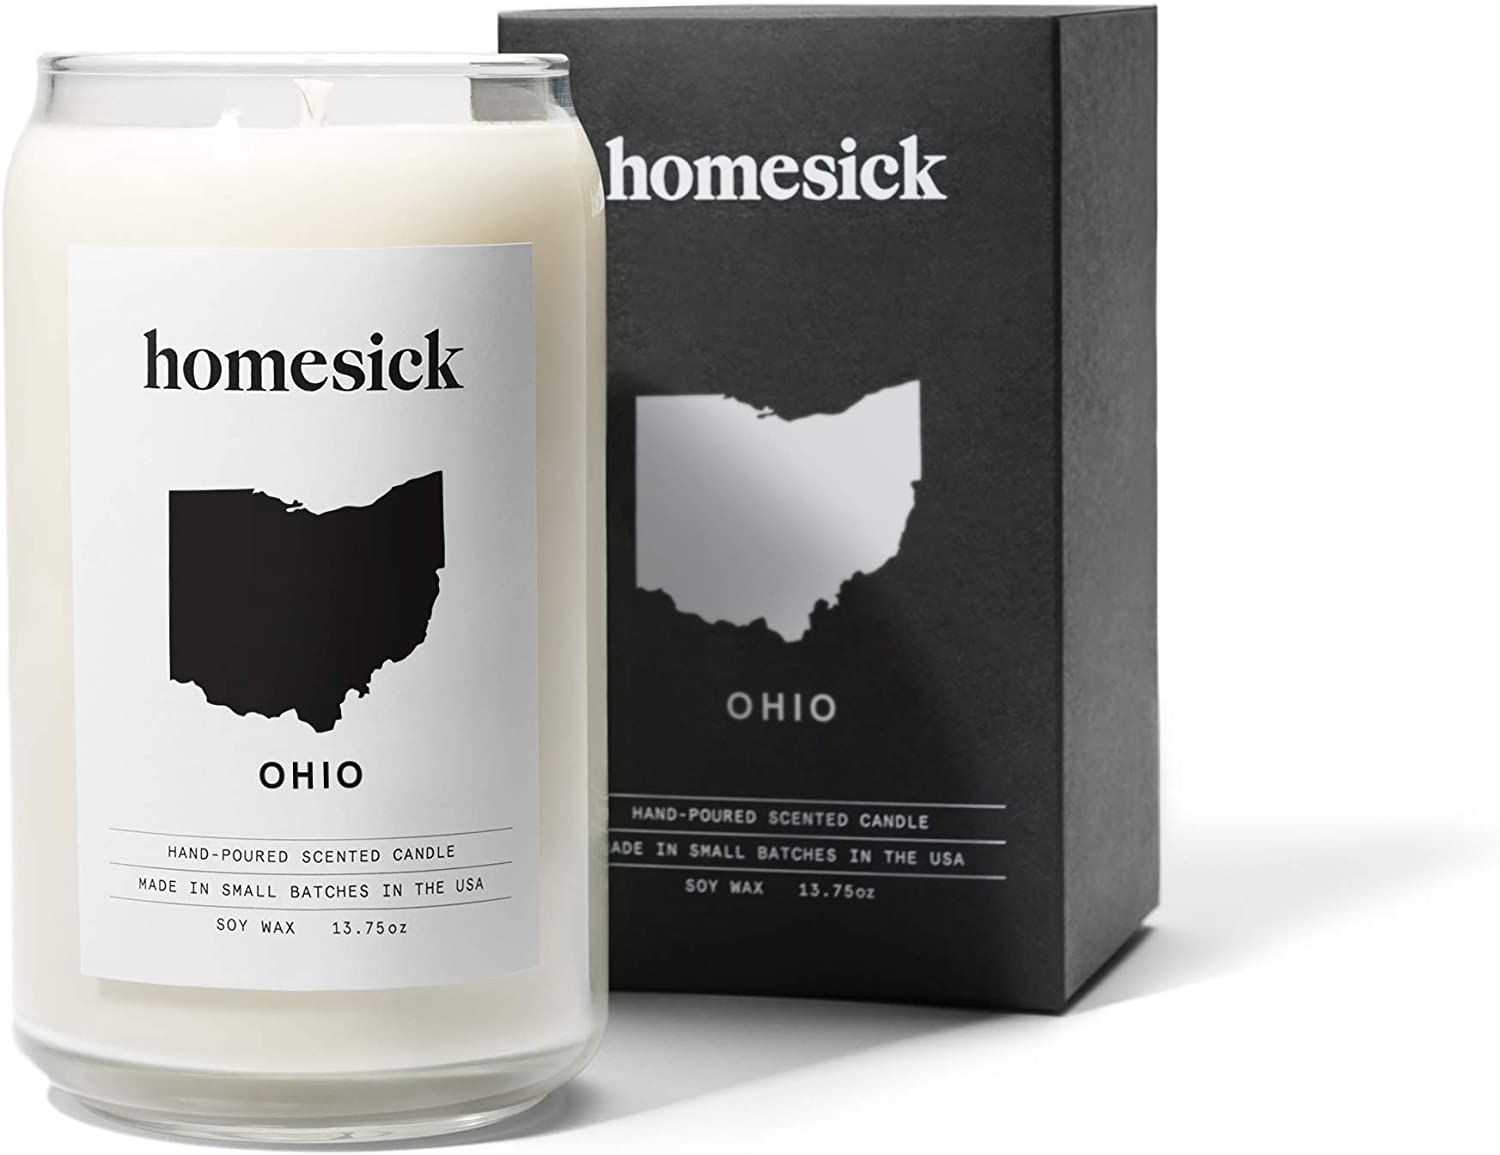 Homesick Scented Candle, Ohio